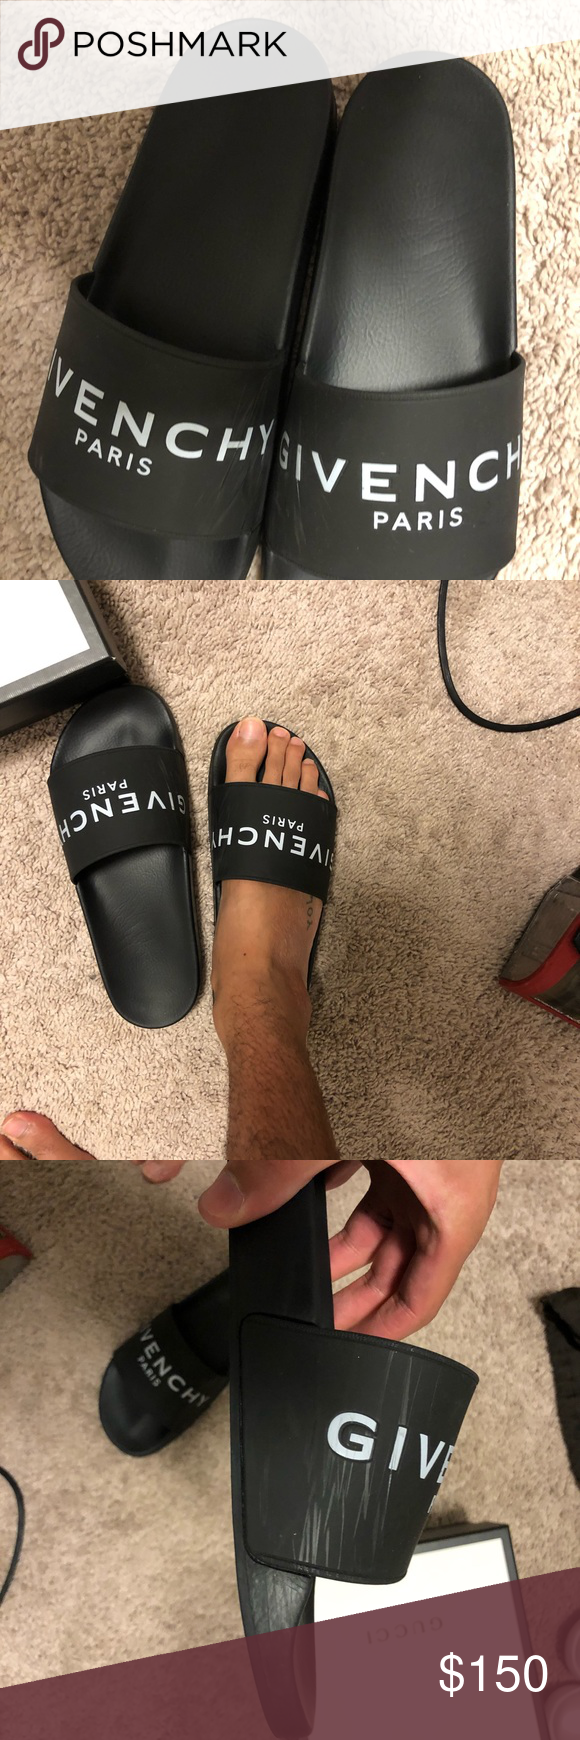 Givenchy Men S Slides Bought These A Couple Of Months Ago Size 11 With Some Superficial Scratches Where The Inside Bands Givenchy Man Givenchy Shoes Givenchy